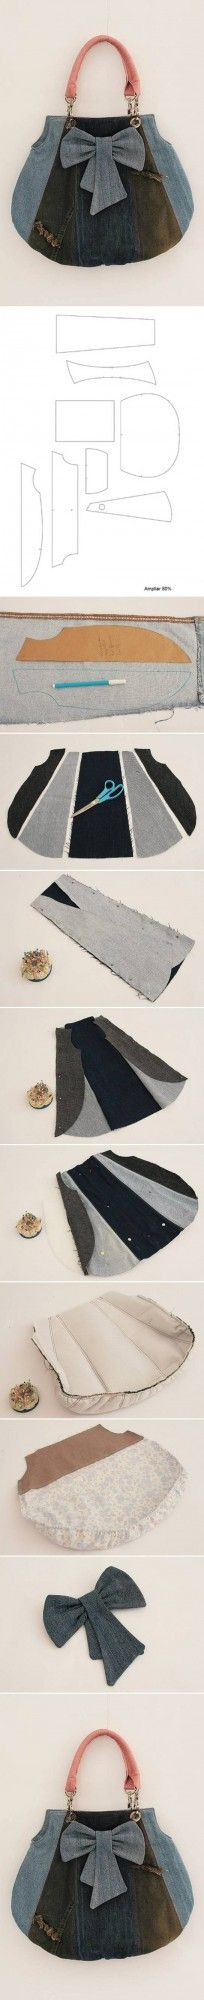 15 Simple but Awesome DIY Fashion Tutorials